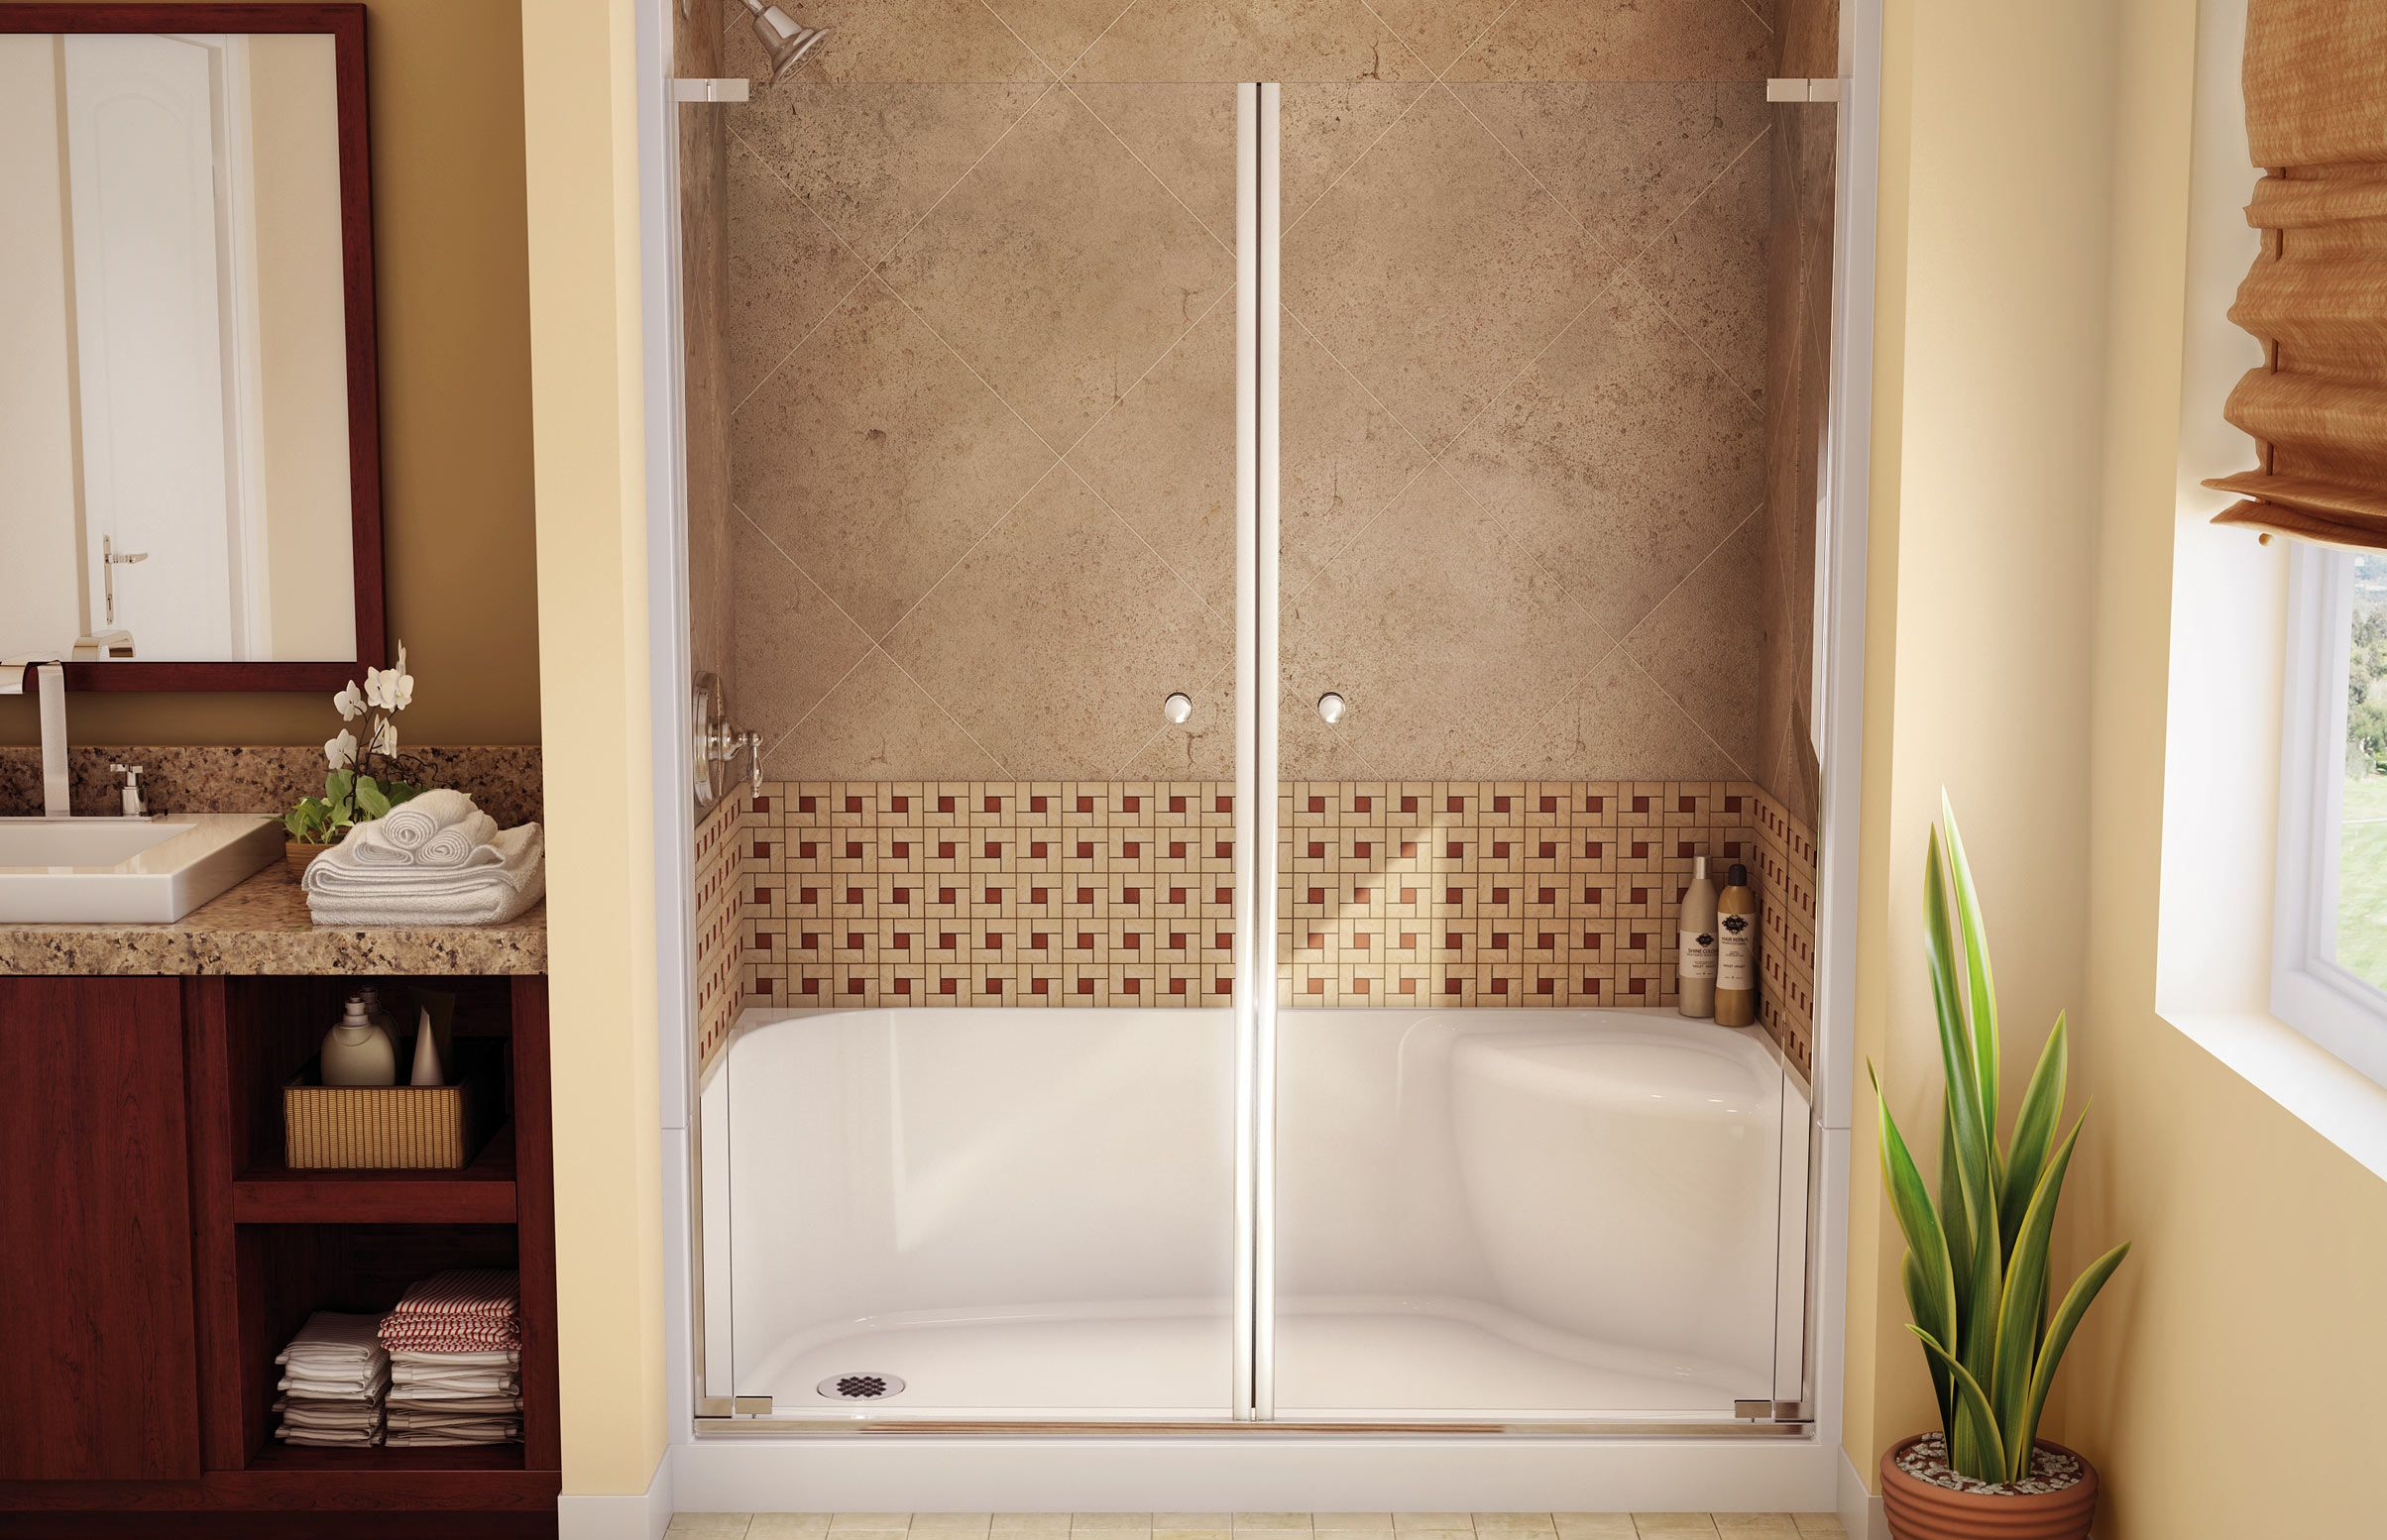 Image result for Maax 102002 48x34 acrylic white shower pan ...